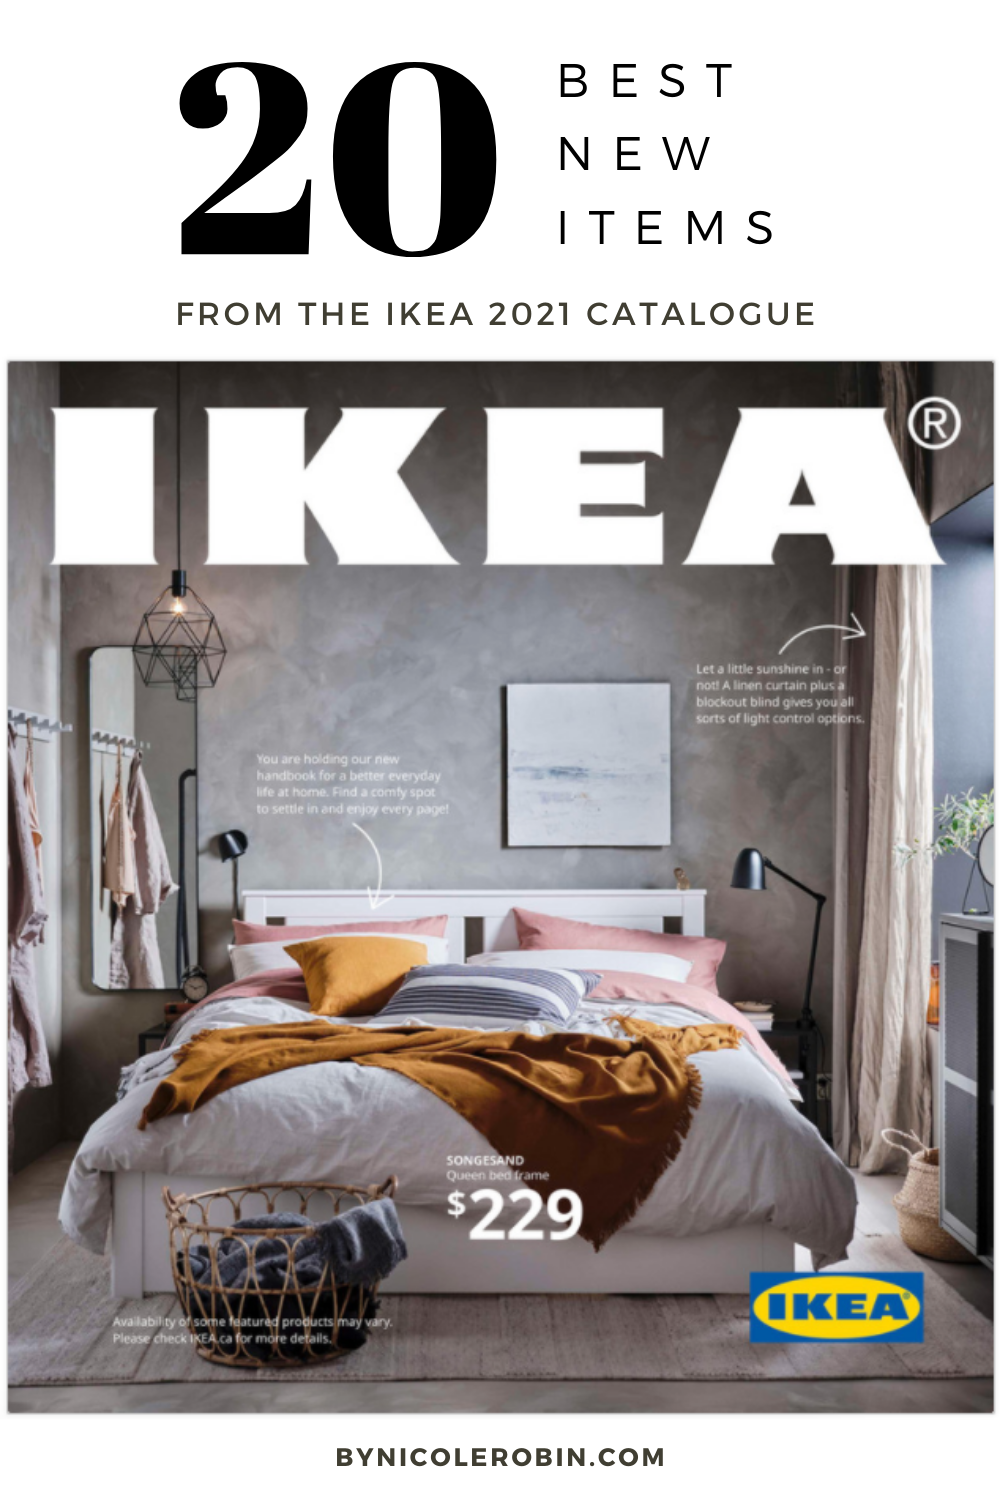 Best New Products 2021 Designer Picks: Top 20 Best New Items from the IKEA 2021 Catalogue